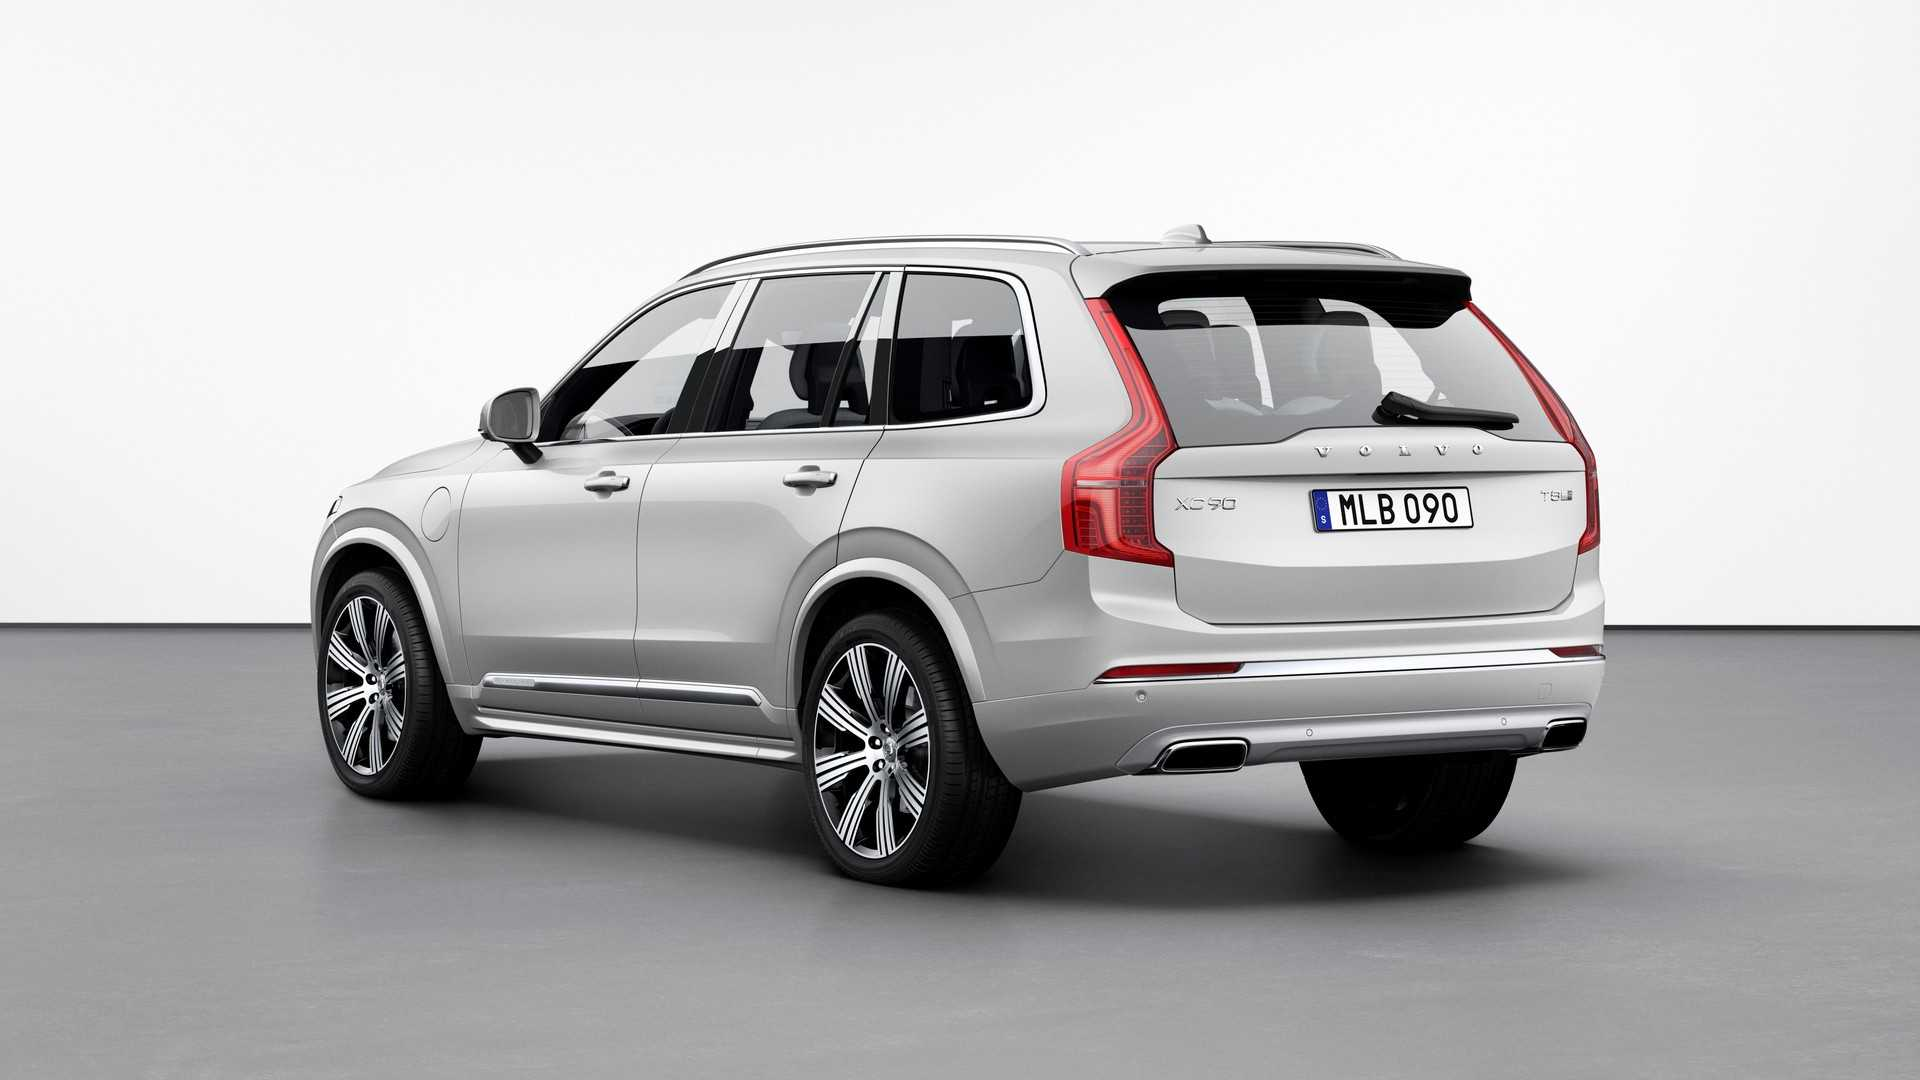 28 New When Does 2020 Volvo Xc90 Come Out Overview with When Does 2020 Volvo Xc90 Come Out